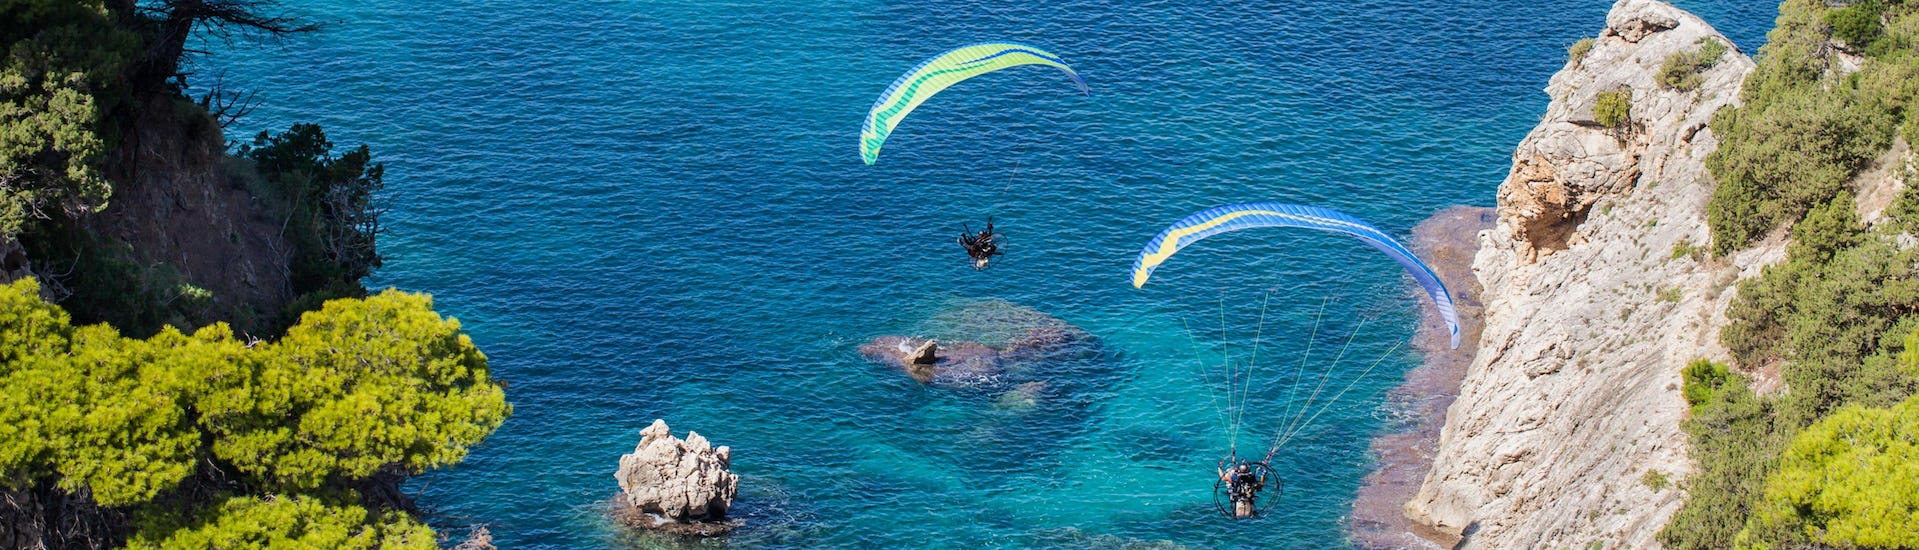 A tandem master and his passenger are sailing through cloudy skies while paragliding in Crete.